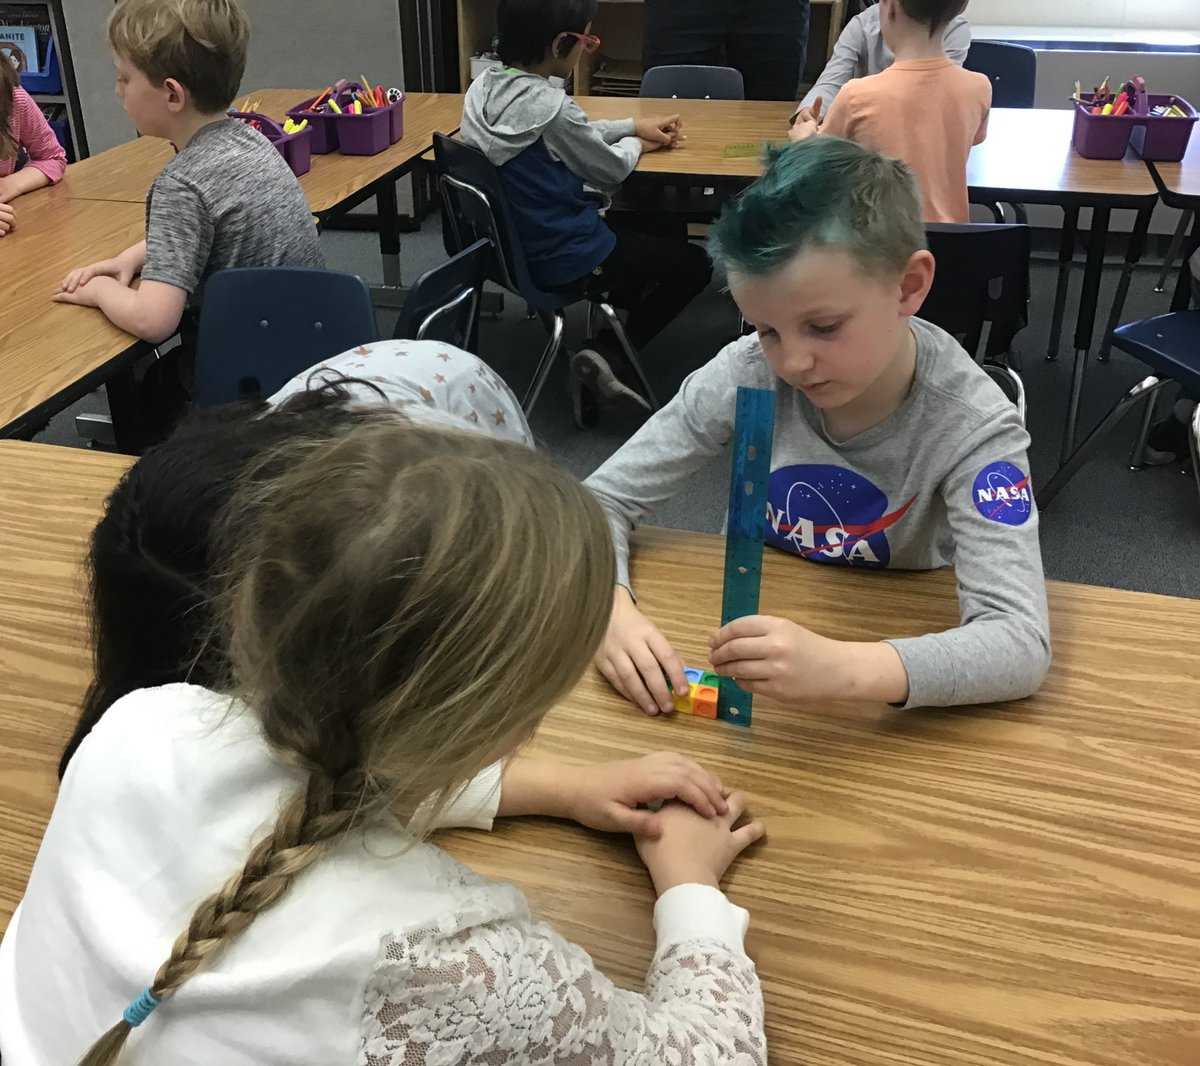 How many centimeters long? <a target='_blank' href='http://twitter.com/GlebeAPS'>@GlebeAPS</a> <a target='_blank' href='http://twitter.com/APSVirginia'>@APSVirginia</a> <a target='_blank' href='http://twitter.com/glebepta'>@glebepta</a> <a target='_blank' href='http://search.twitter.com/search?q=GlebeEagles'><a target='_blank' href='https://twitter.com/hashtag/GlebeEagles?src=hash'>#GlebeEagles</a></a> <a target='_blank' href='https://t.co/vfTCMtjvbJ'>https://t.co/vfTCMtjvbJ</a>